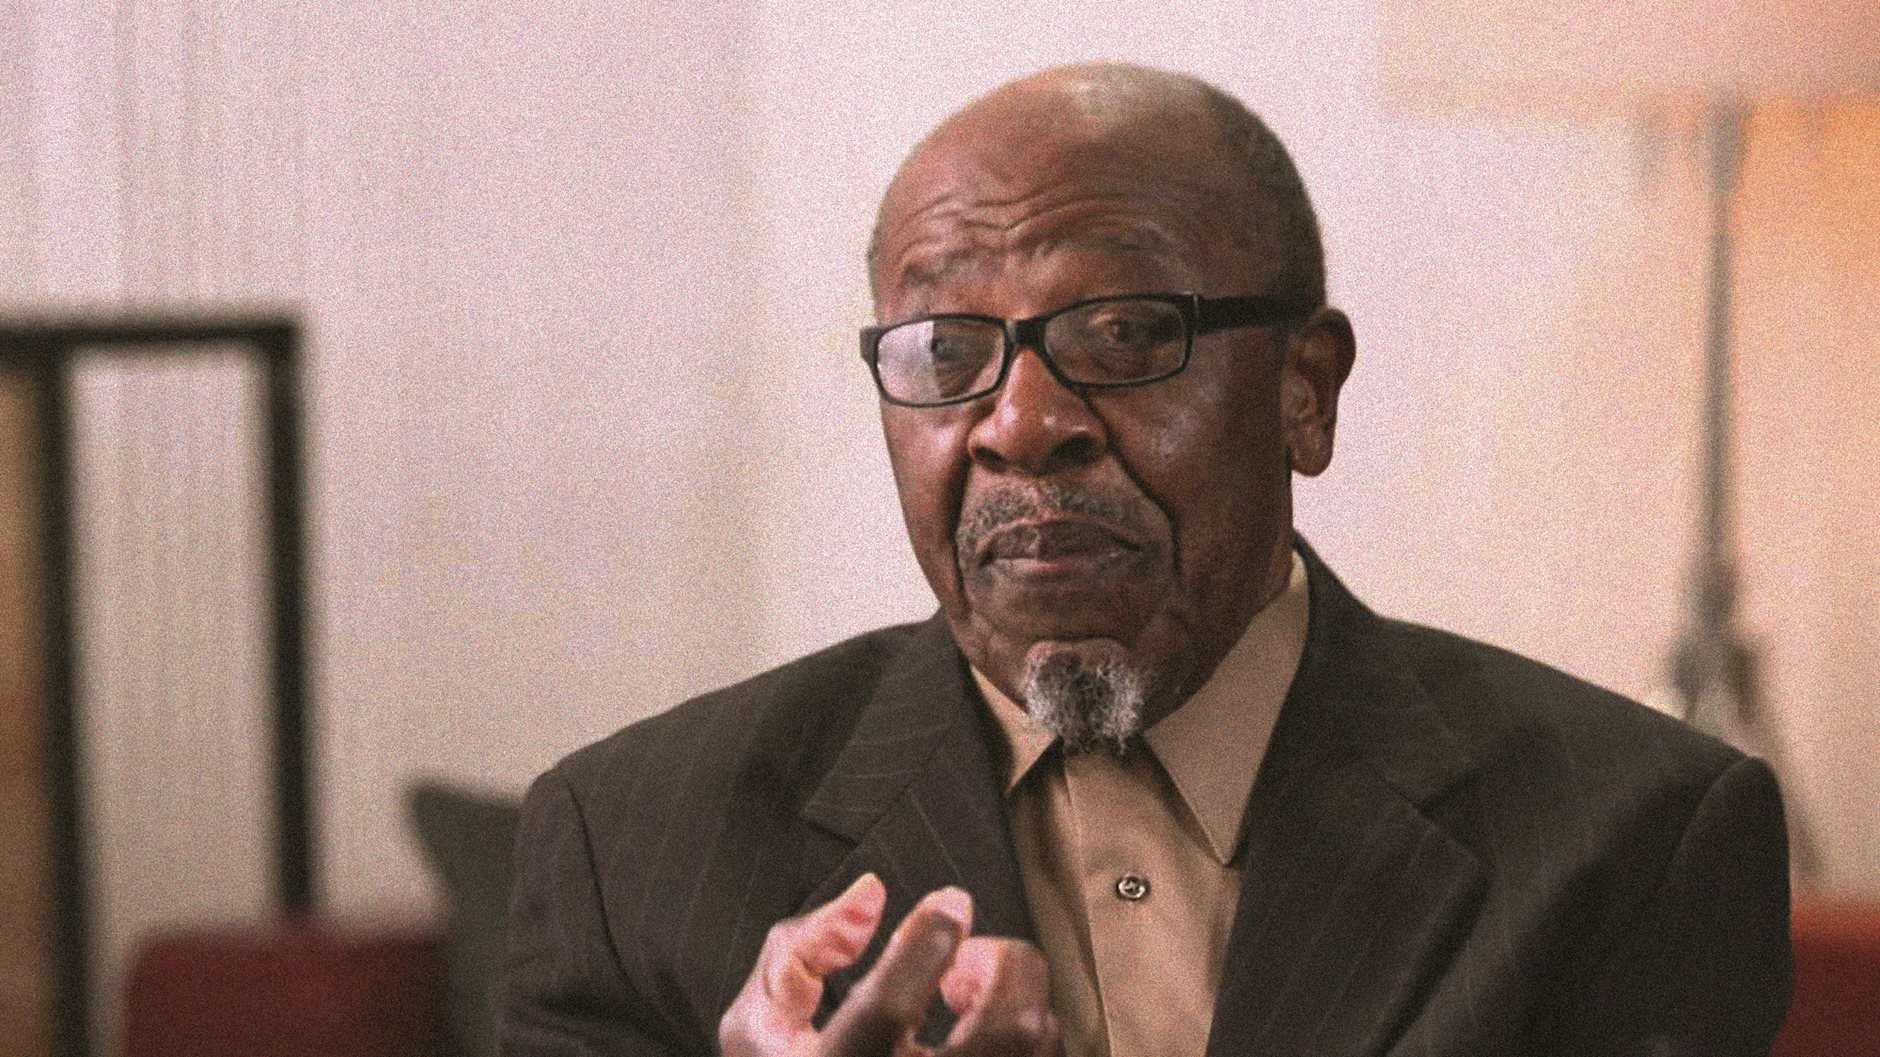 Ep. 36: Dr. John Perkins on the need for multi-ethnic